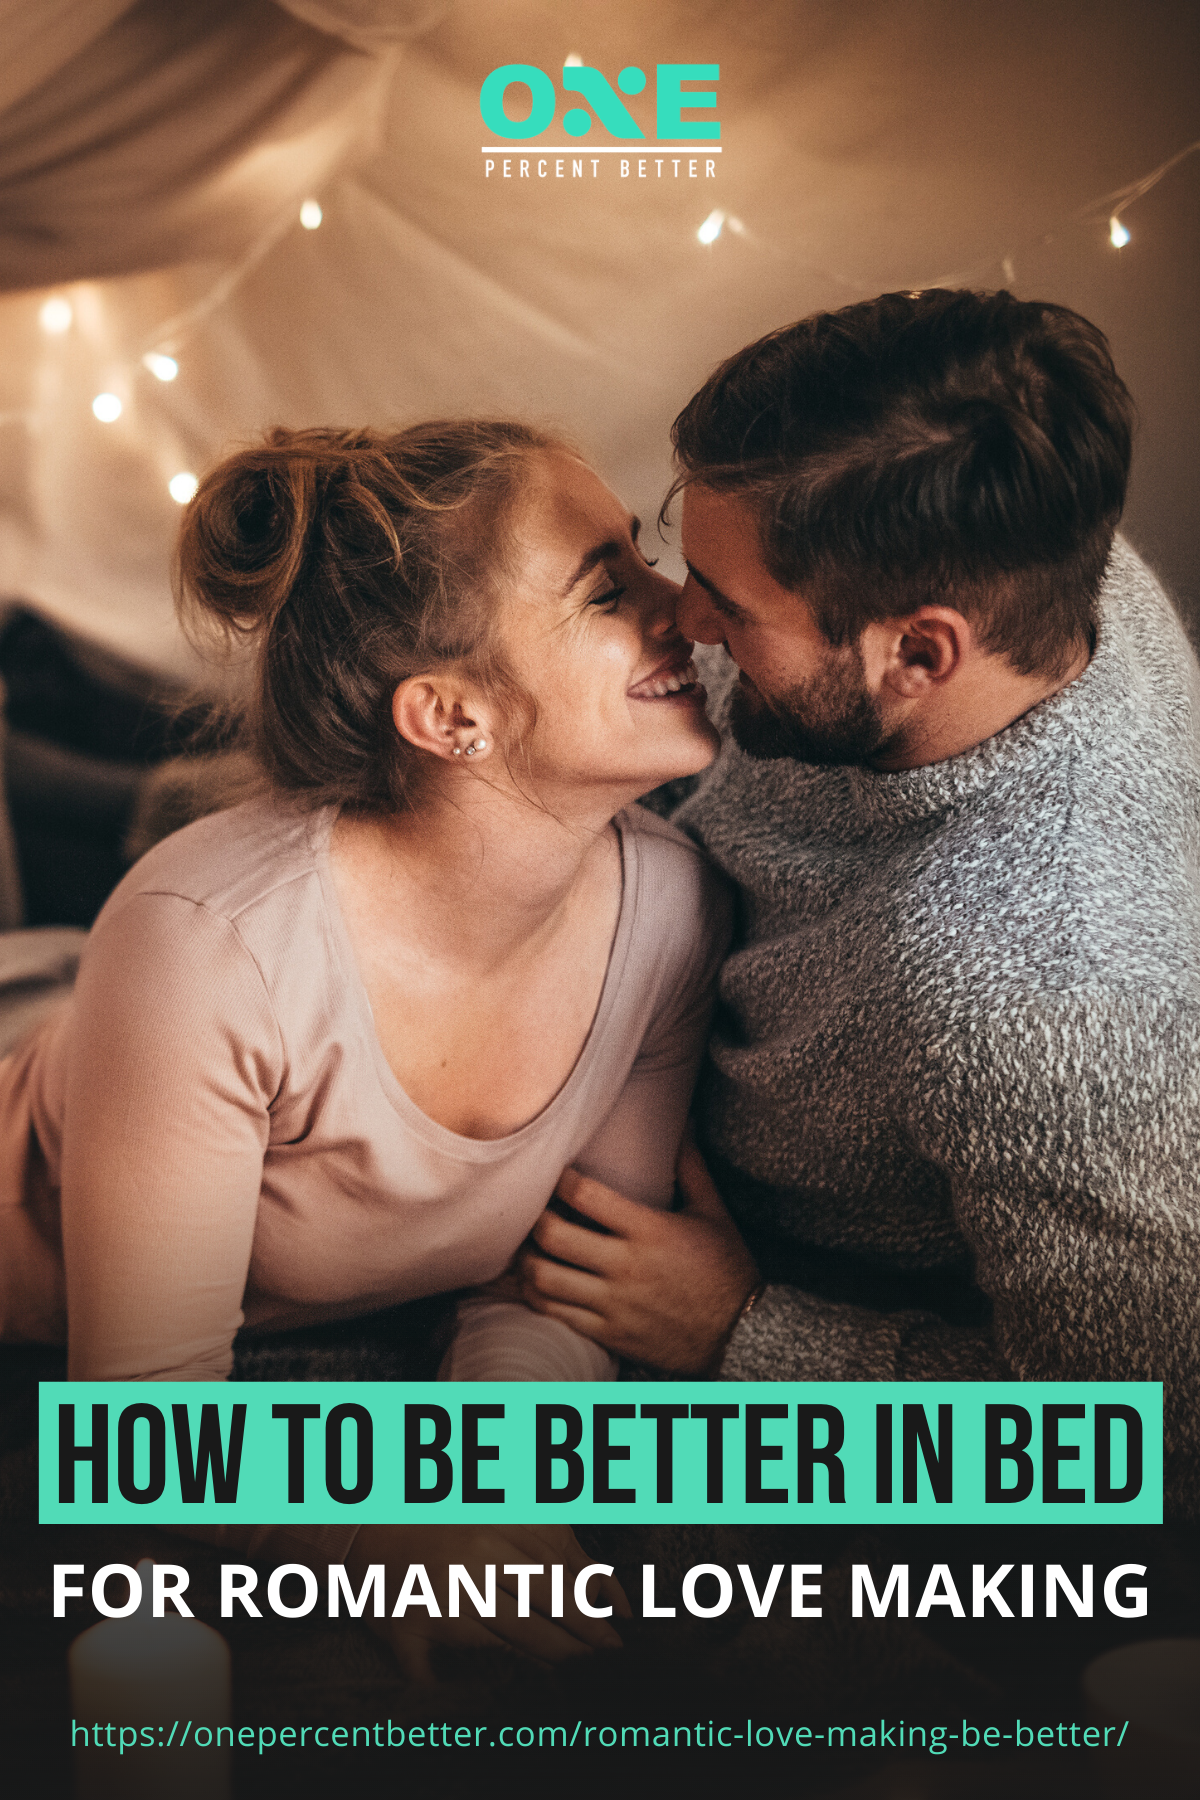 How To Be Better In Bed For Romantic Love-Making https://onepercentbetter.com/romantic-love-making-be-better/